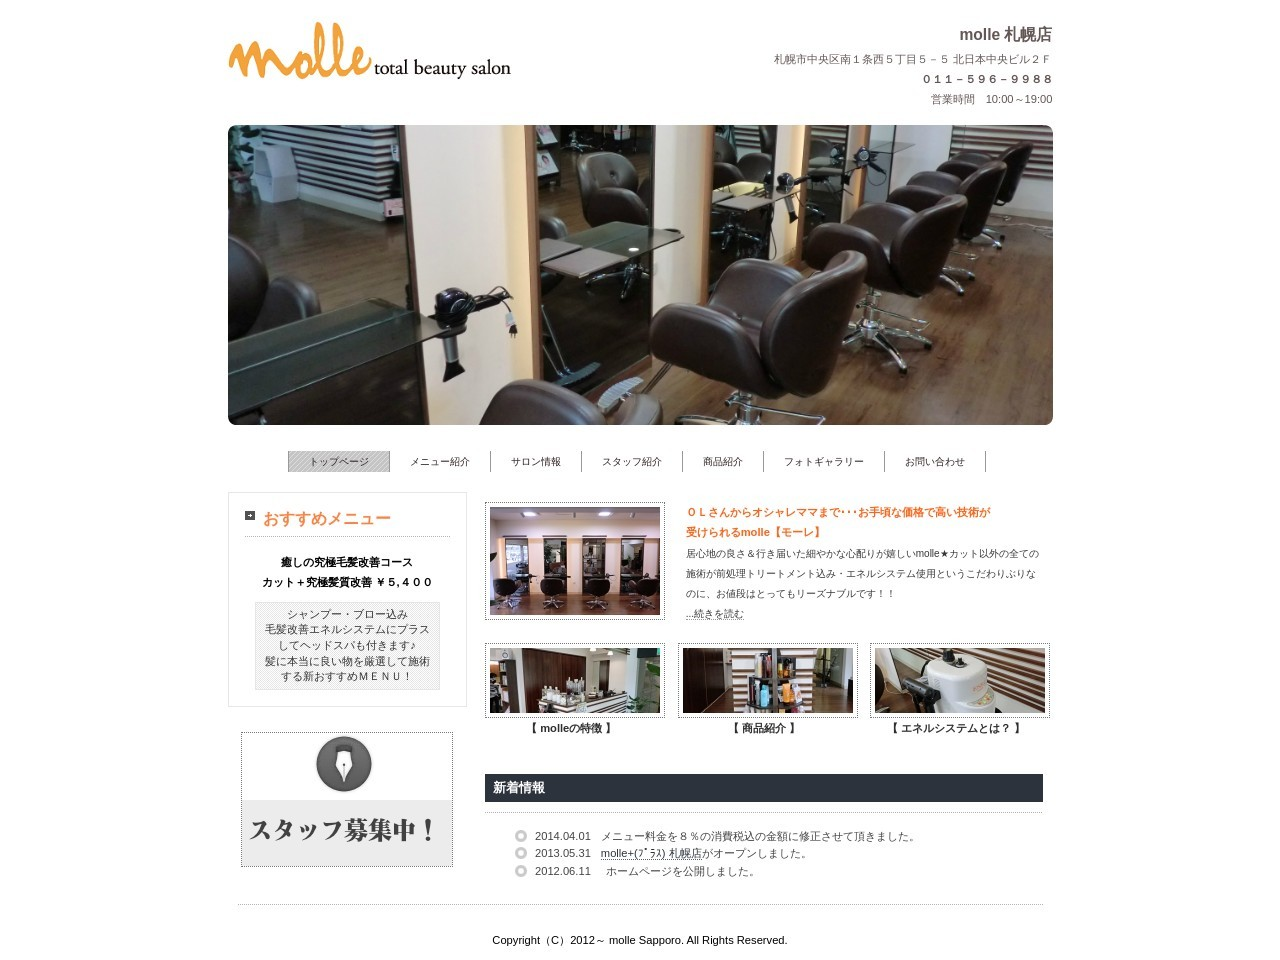 Hair Quality Salon molle × xuon【モーレ クオン】